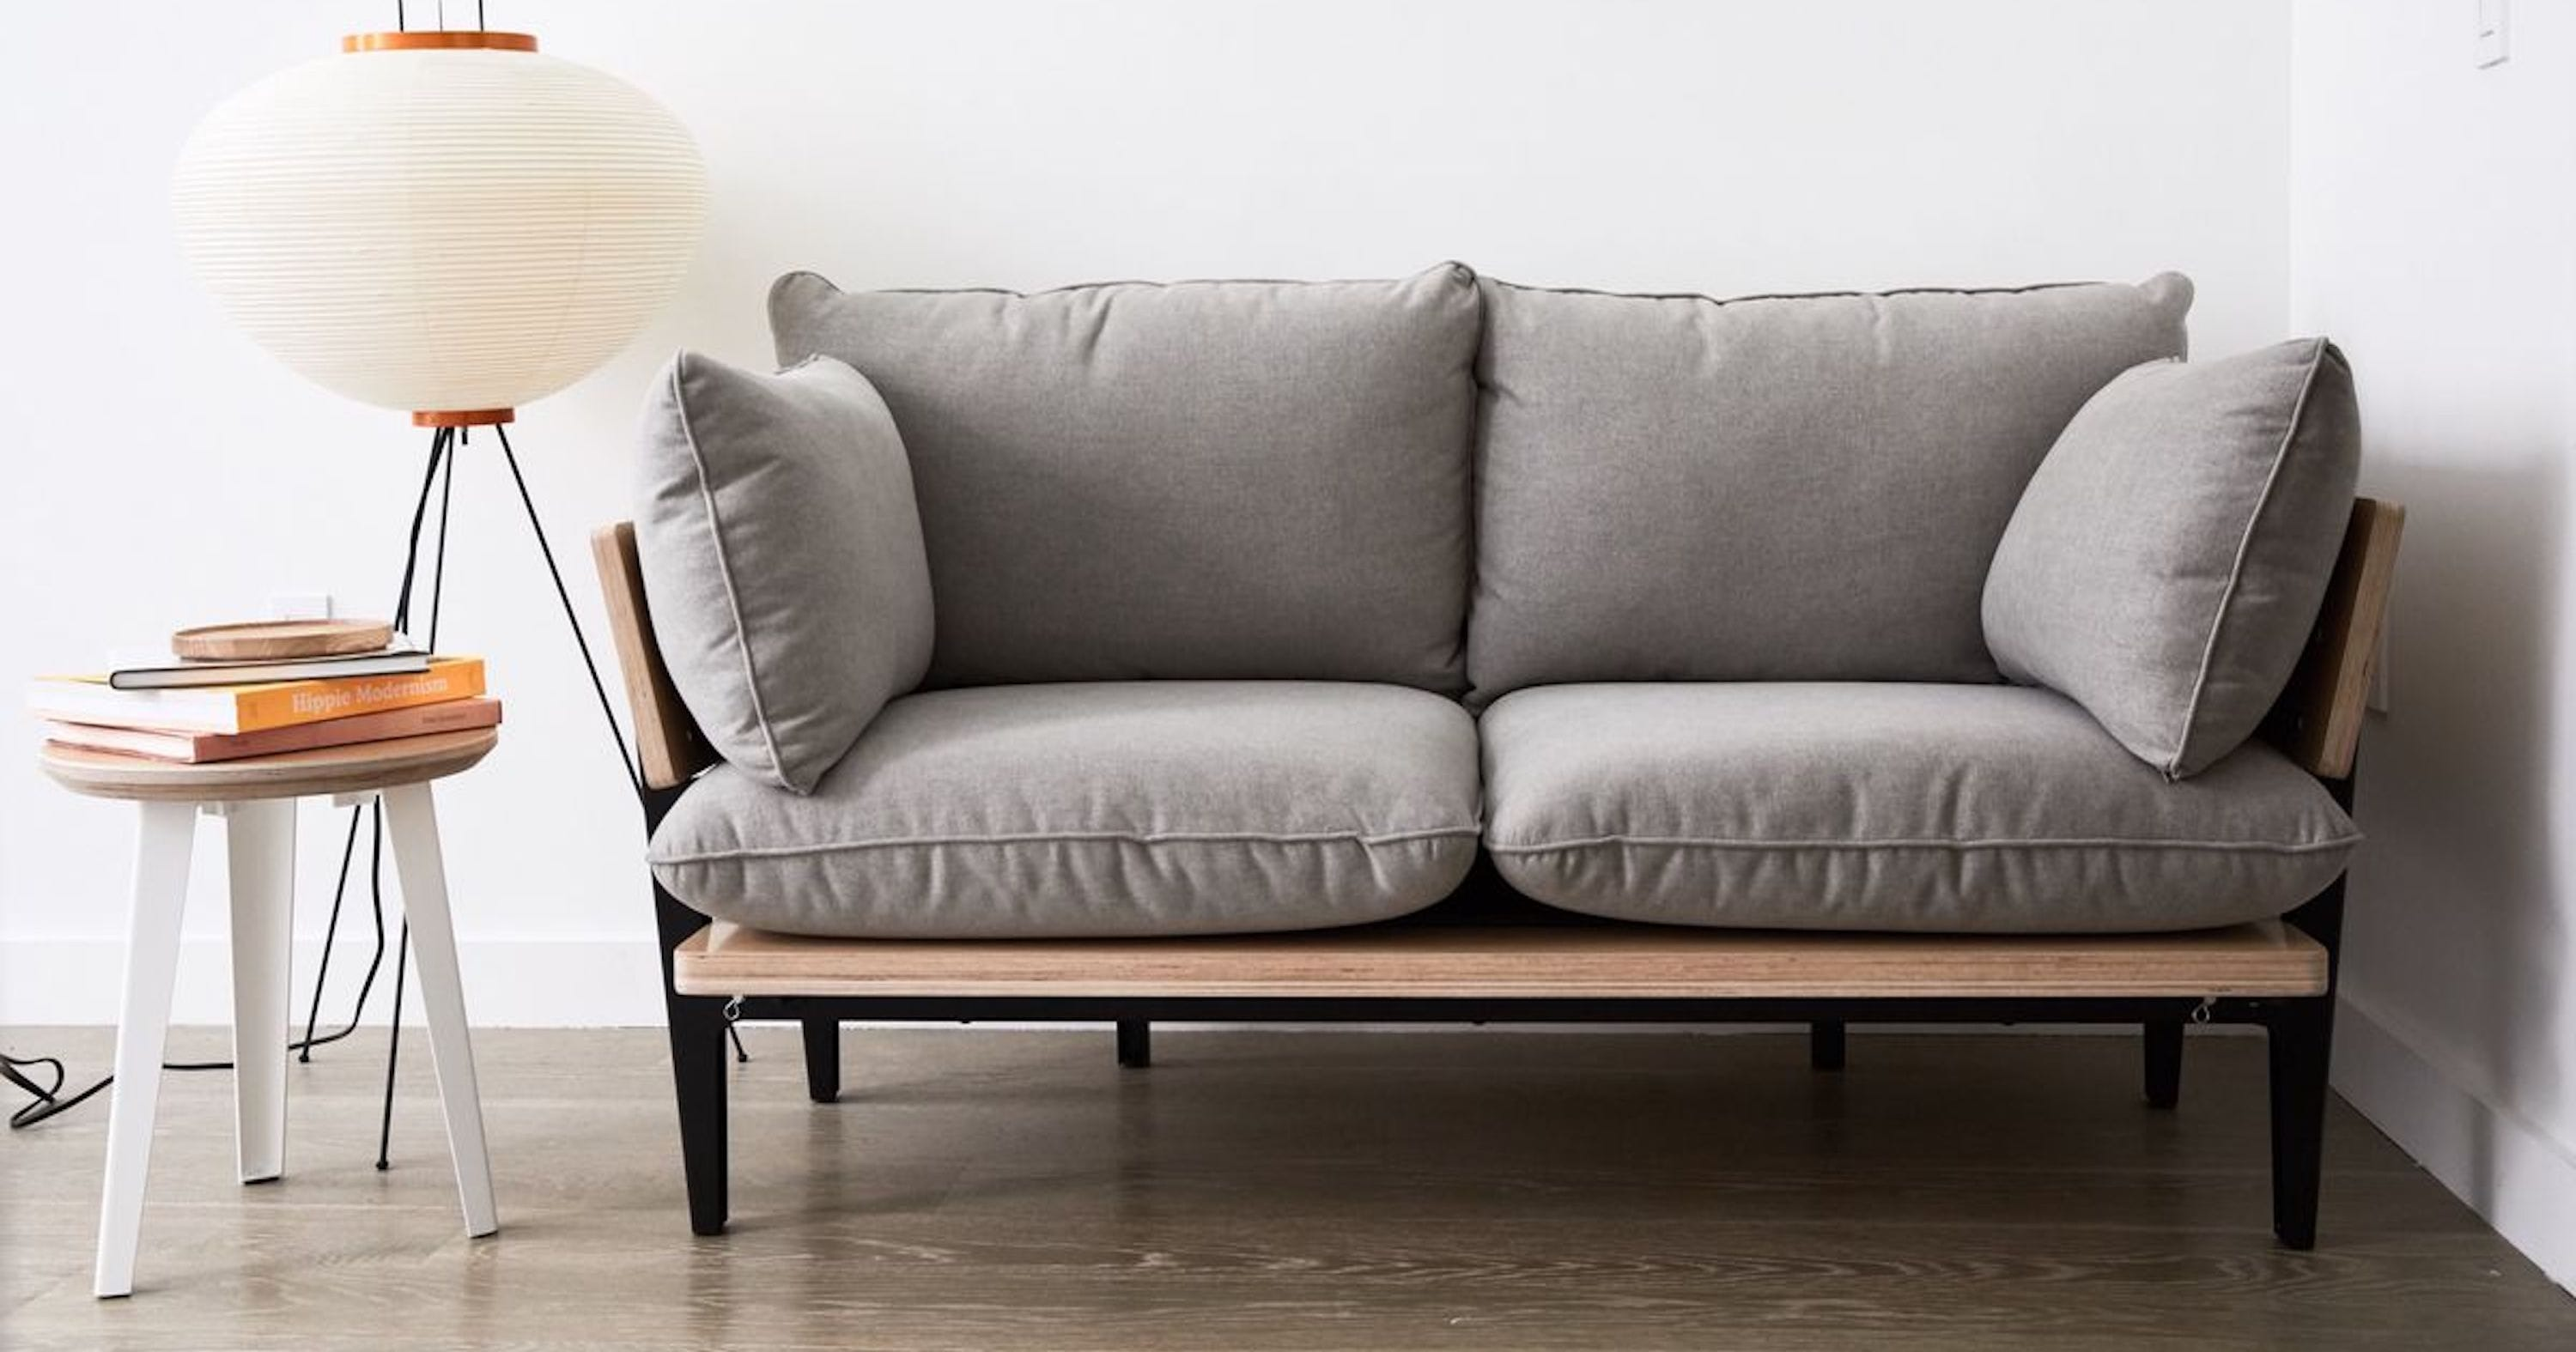 Best Small Loveseats For Affordable Space Saving Sofa